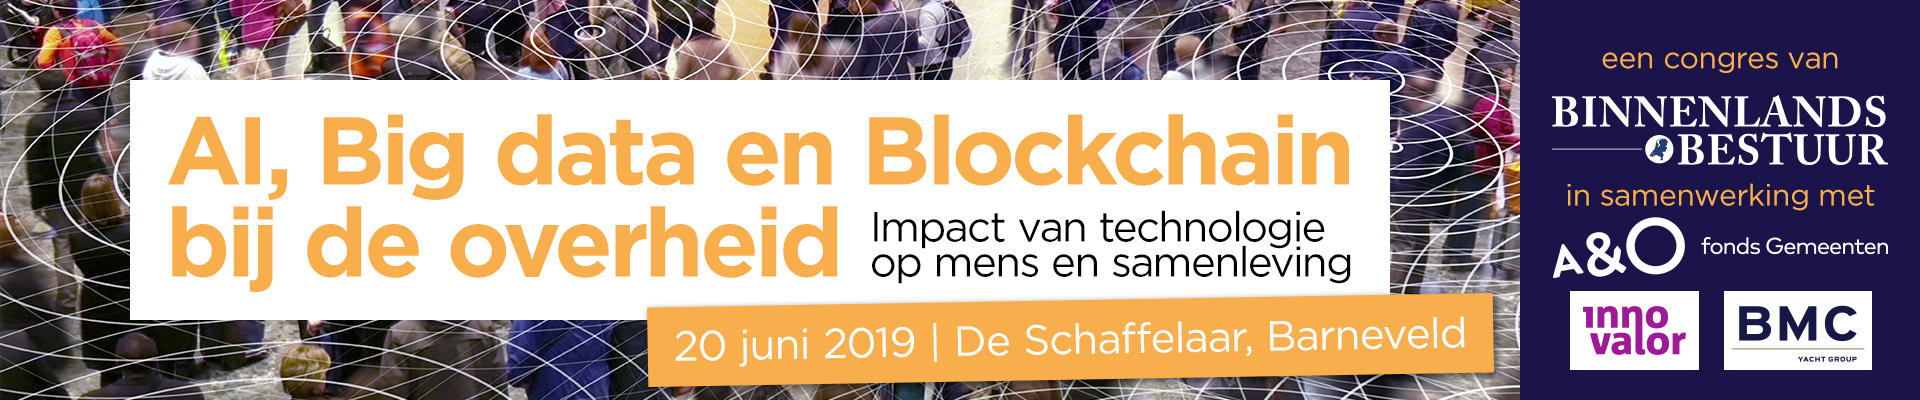 Congres AI, Big Data en Blockchain